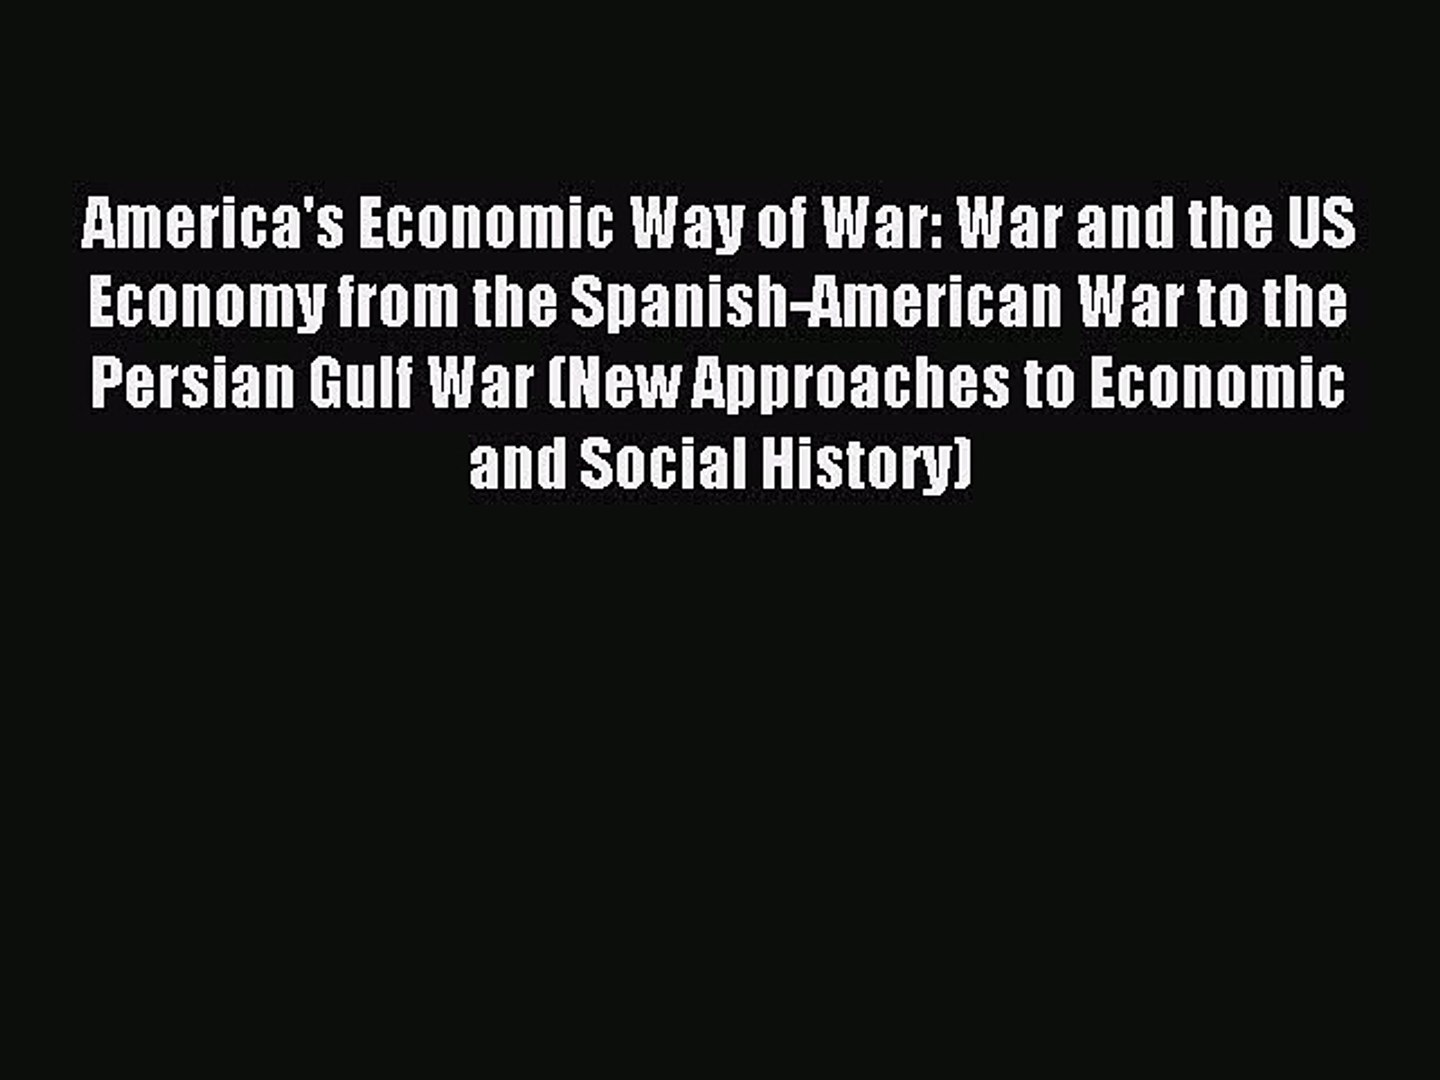 Read America's Economic Way of War: War and the US Economy from the Spanish-American War to